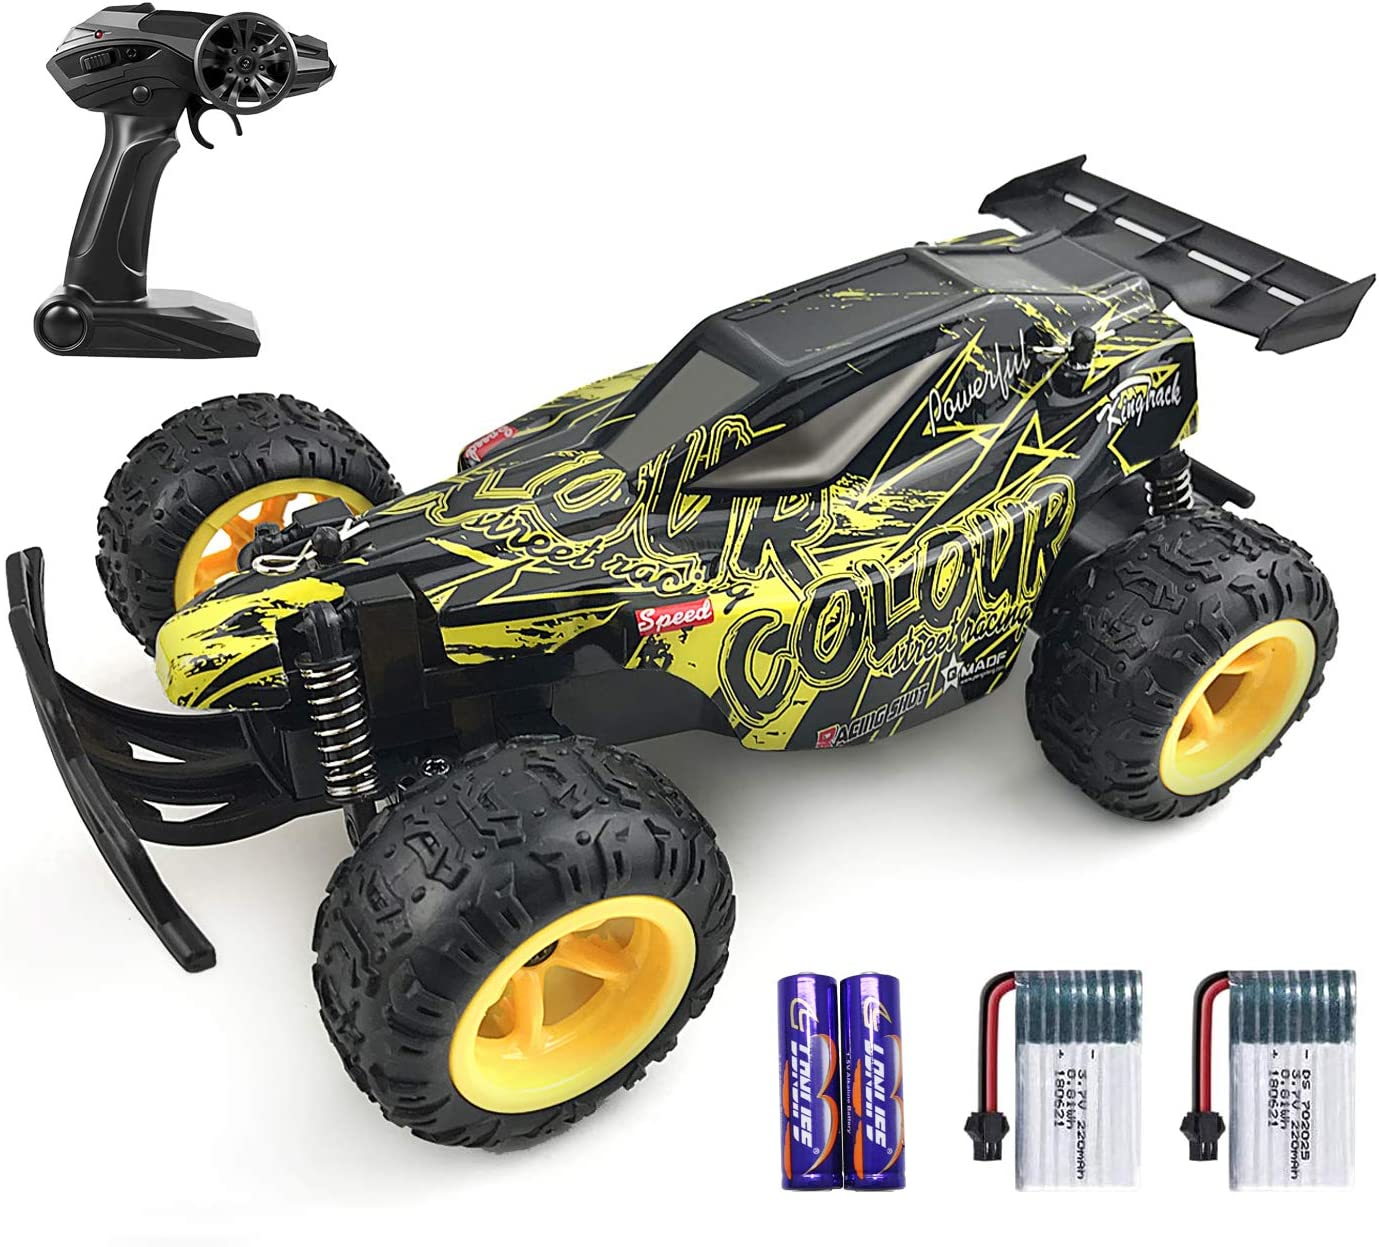 2.4Ghz Wireless Receiver 1:22 High Speed Racing RC Cars with 2 Rechargeable Batteries,Toy Gifts for Kids,Black and Yellow GamePath Remote Control Car